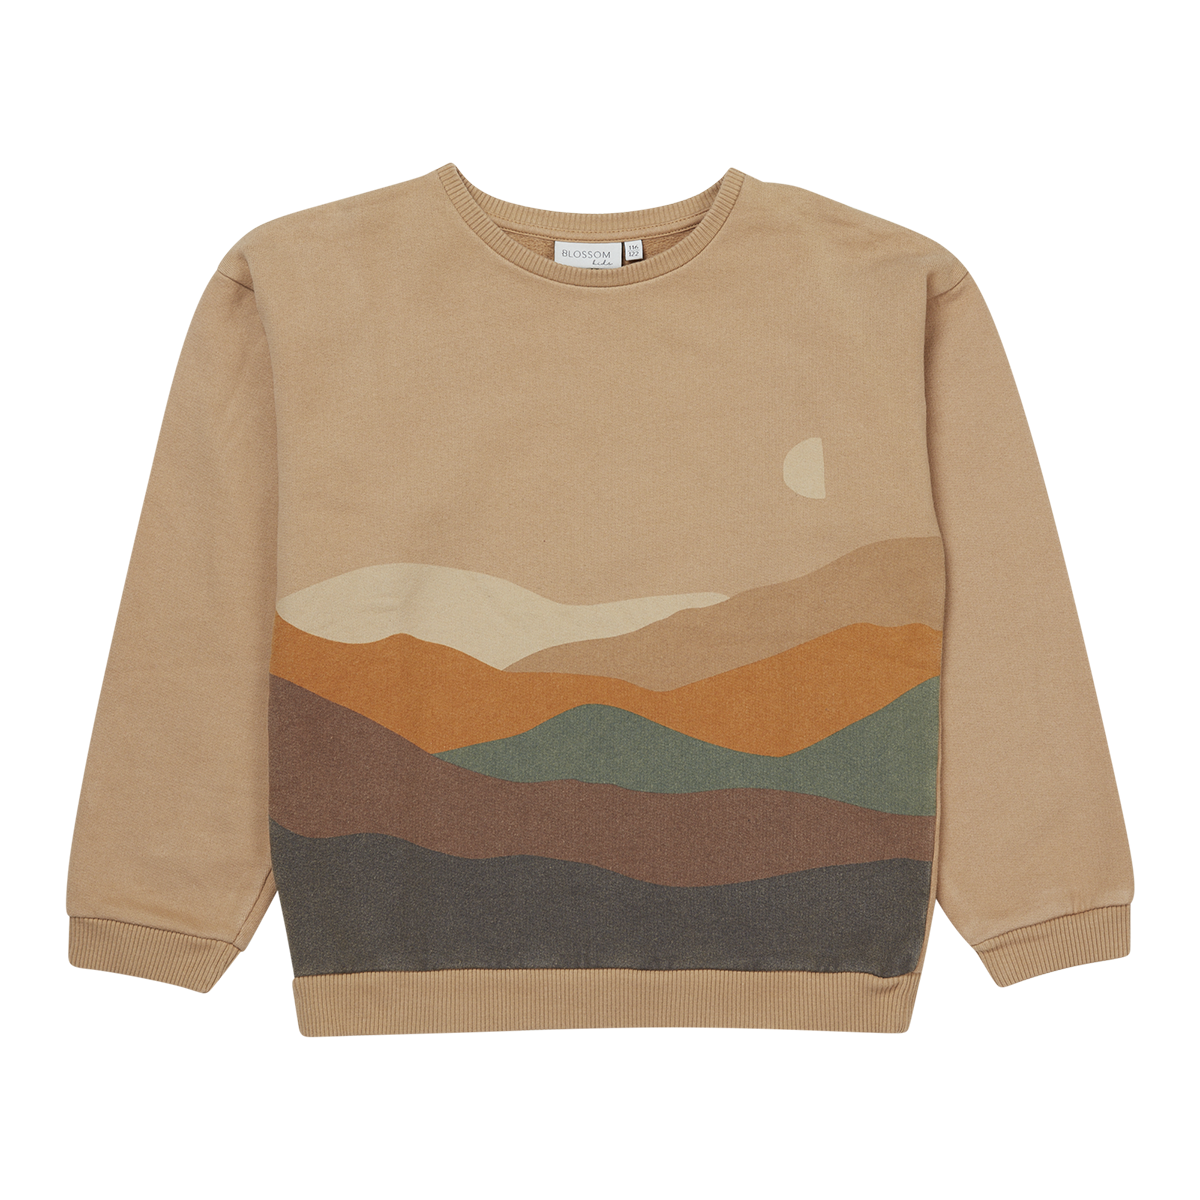 Blossom kids Sweater - Over the Hills